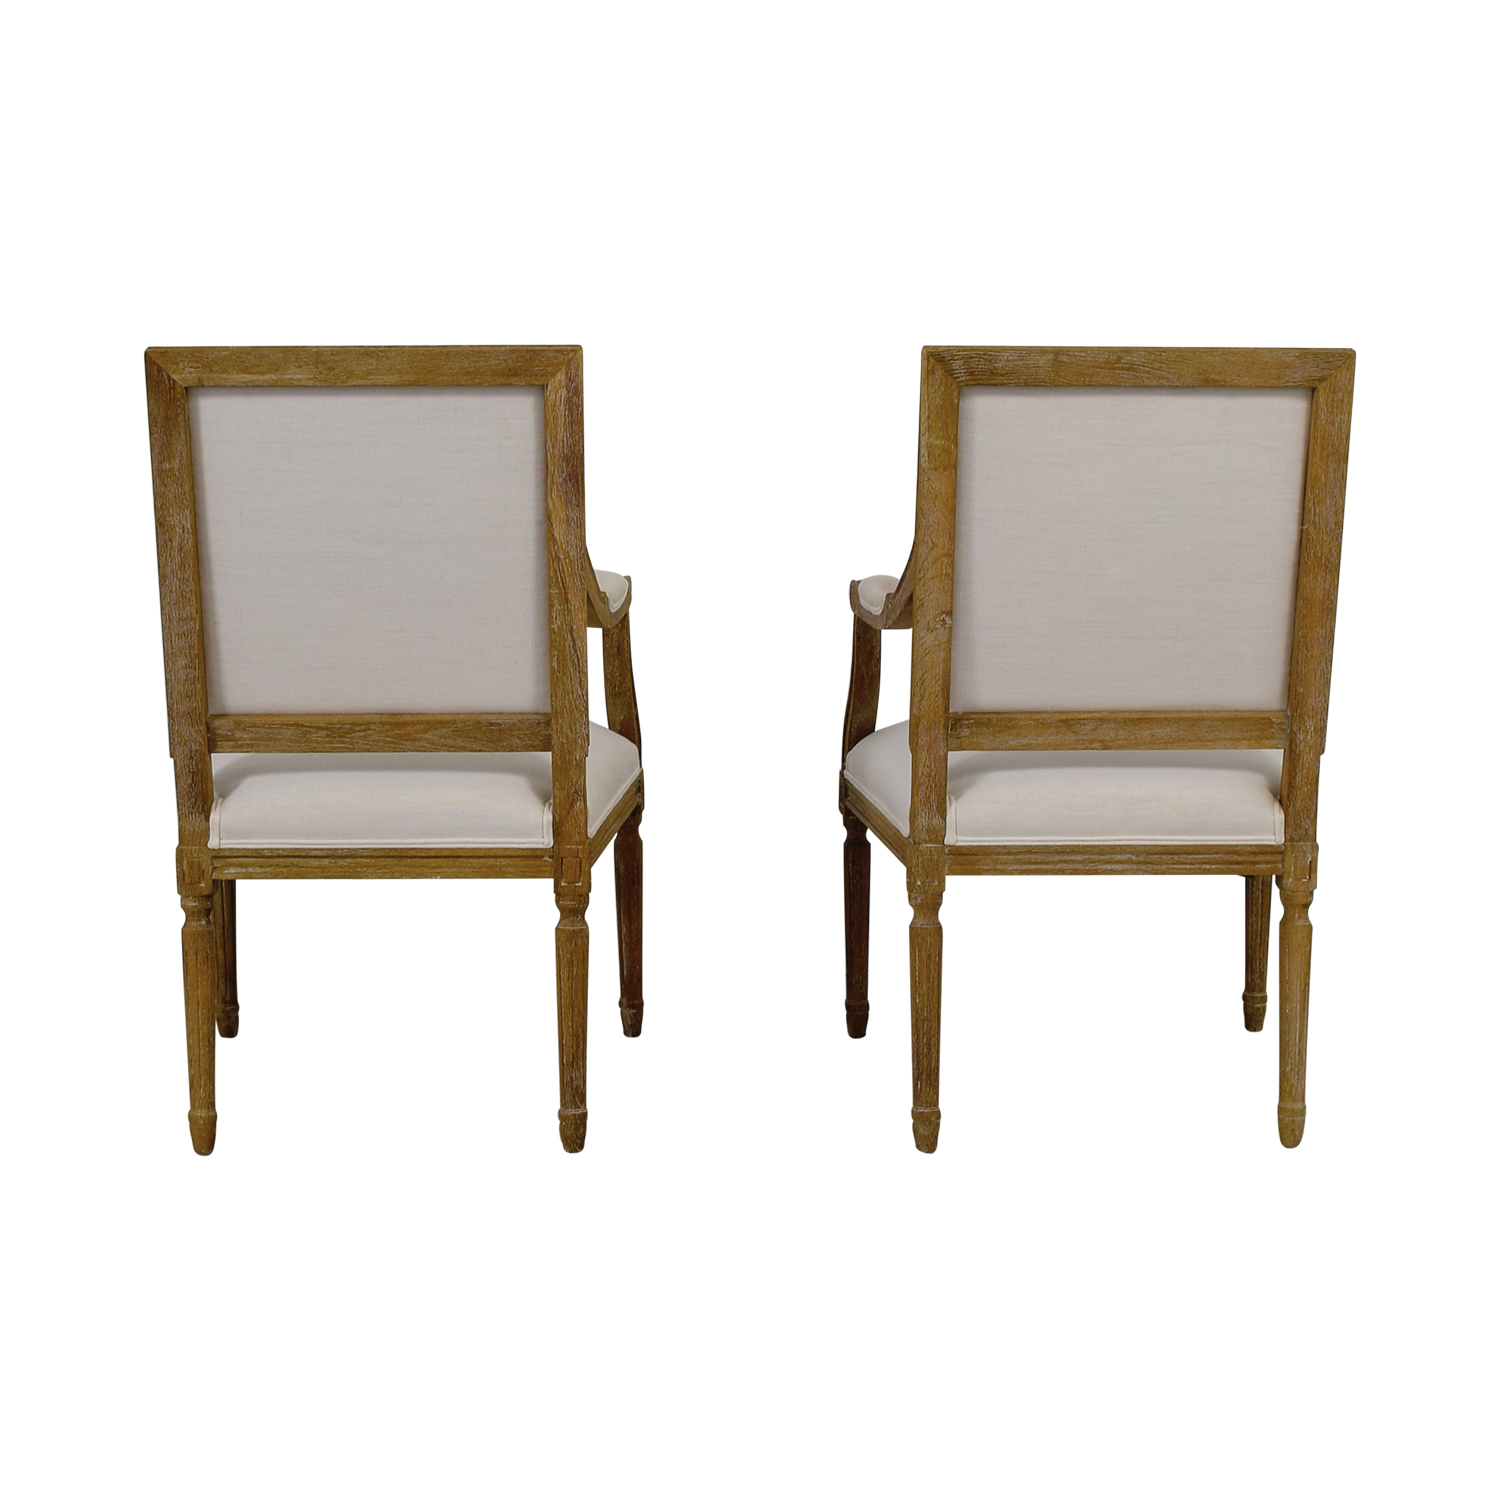 Wisteria Wisteria Chateau White Upholstered Rustic Wood Armchairs coupon